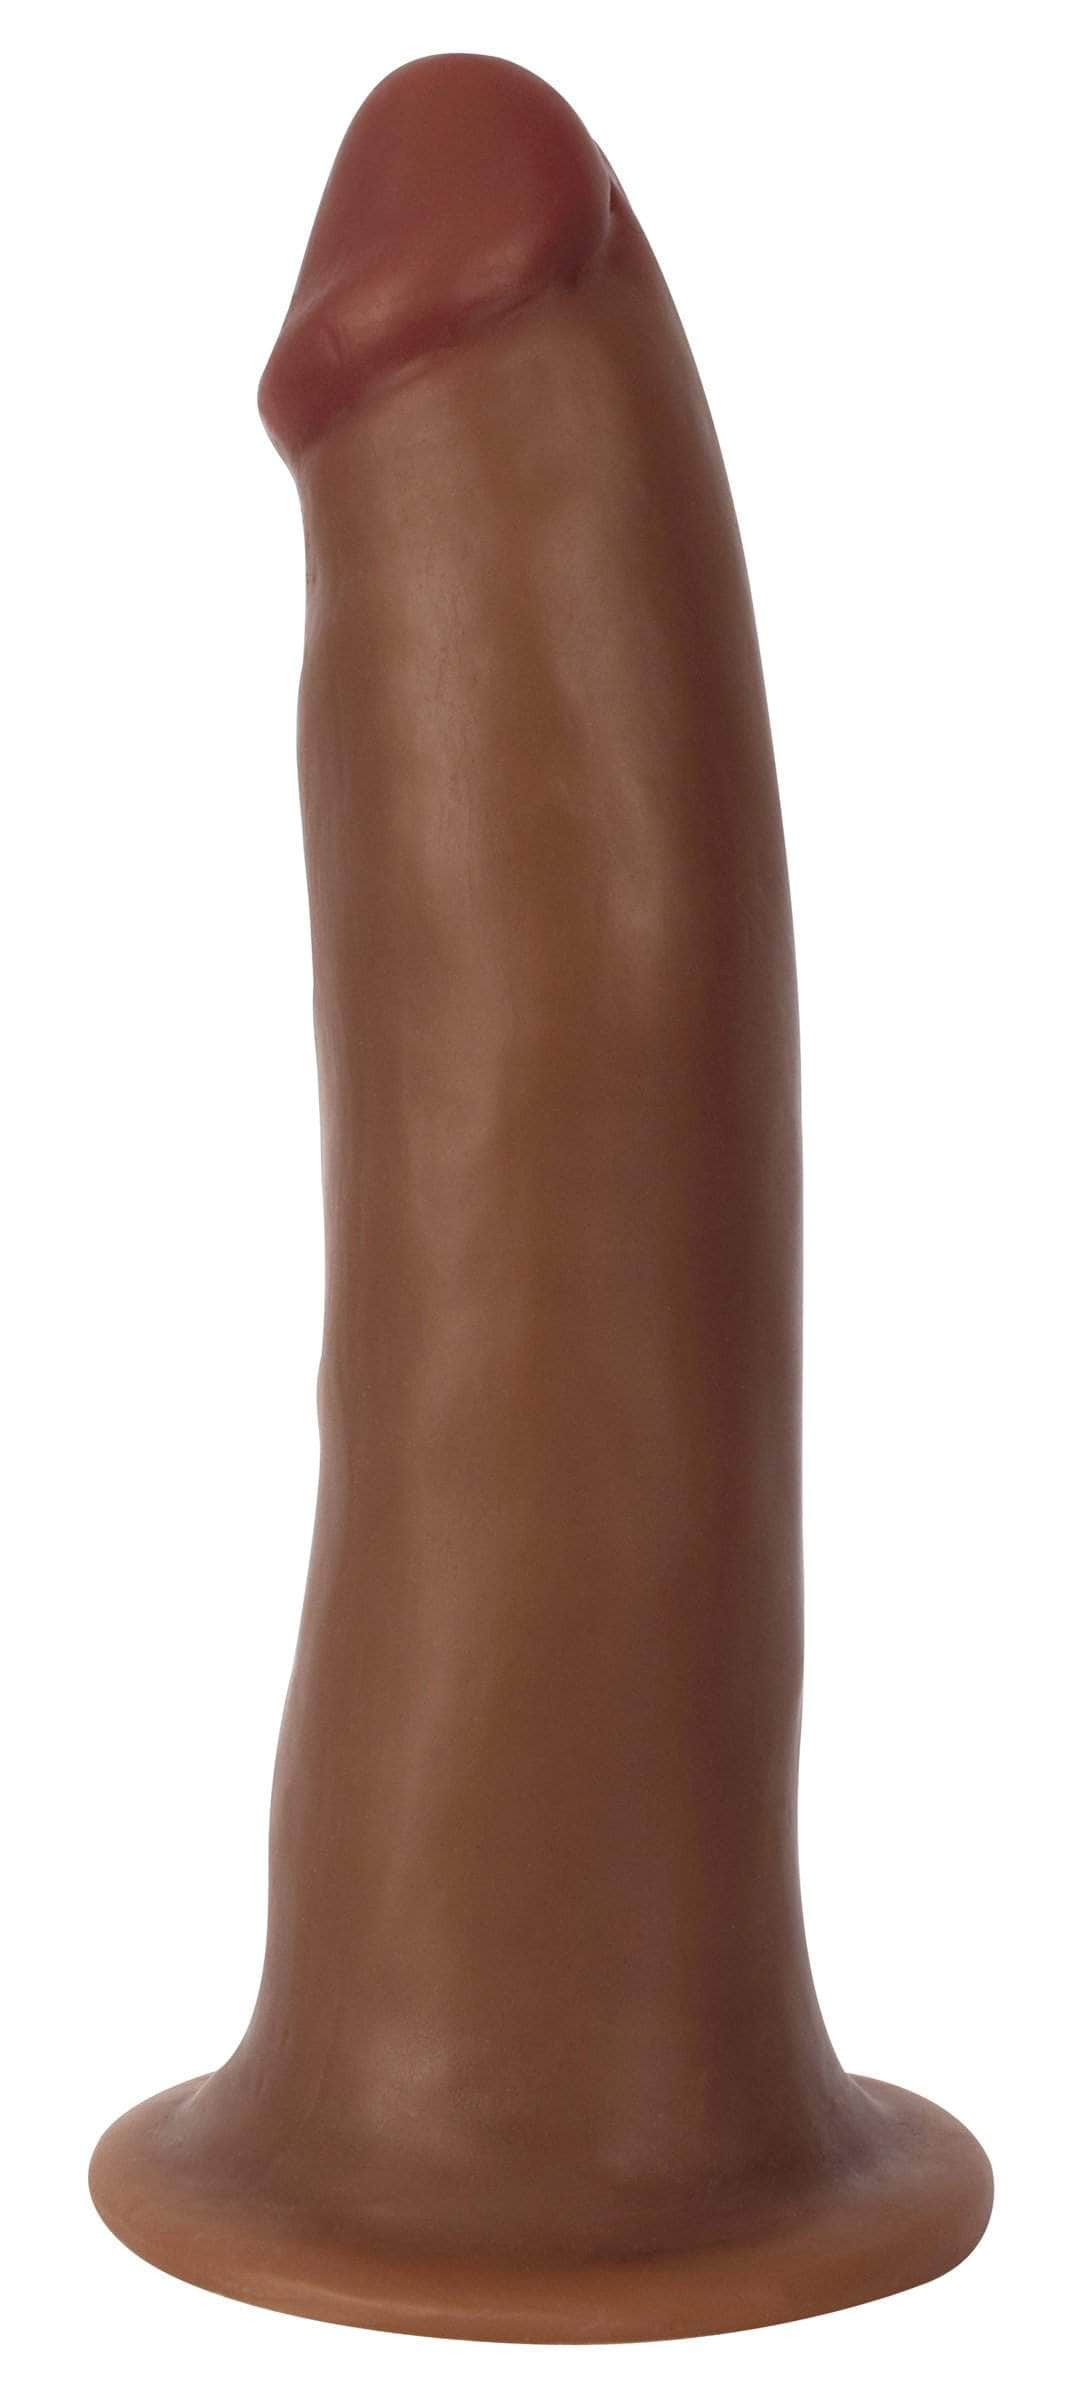 Thinz 7 Inch Slim Dong - Medium